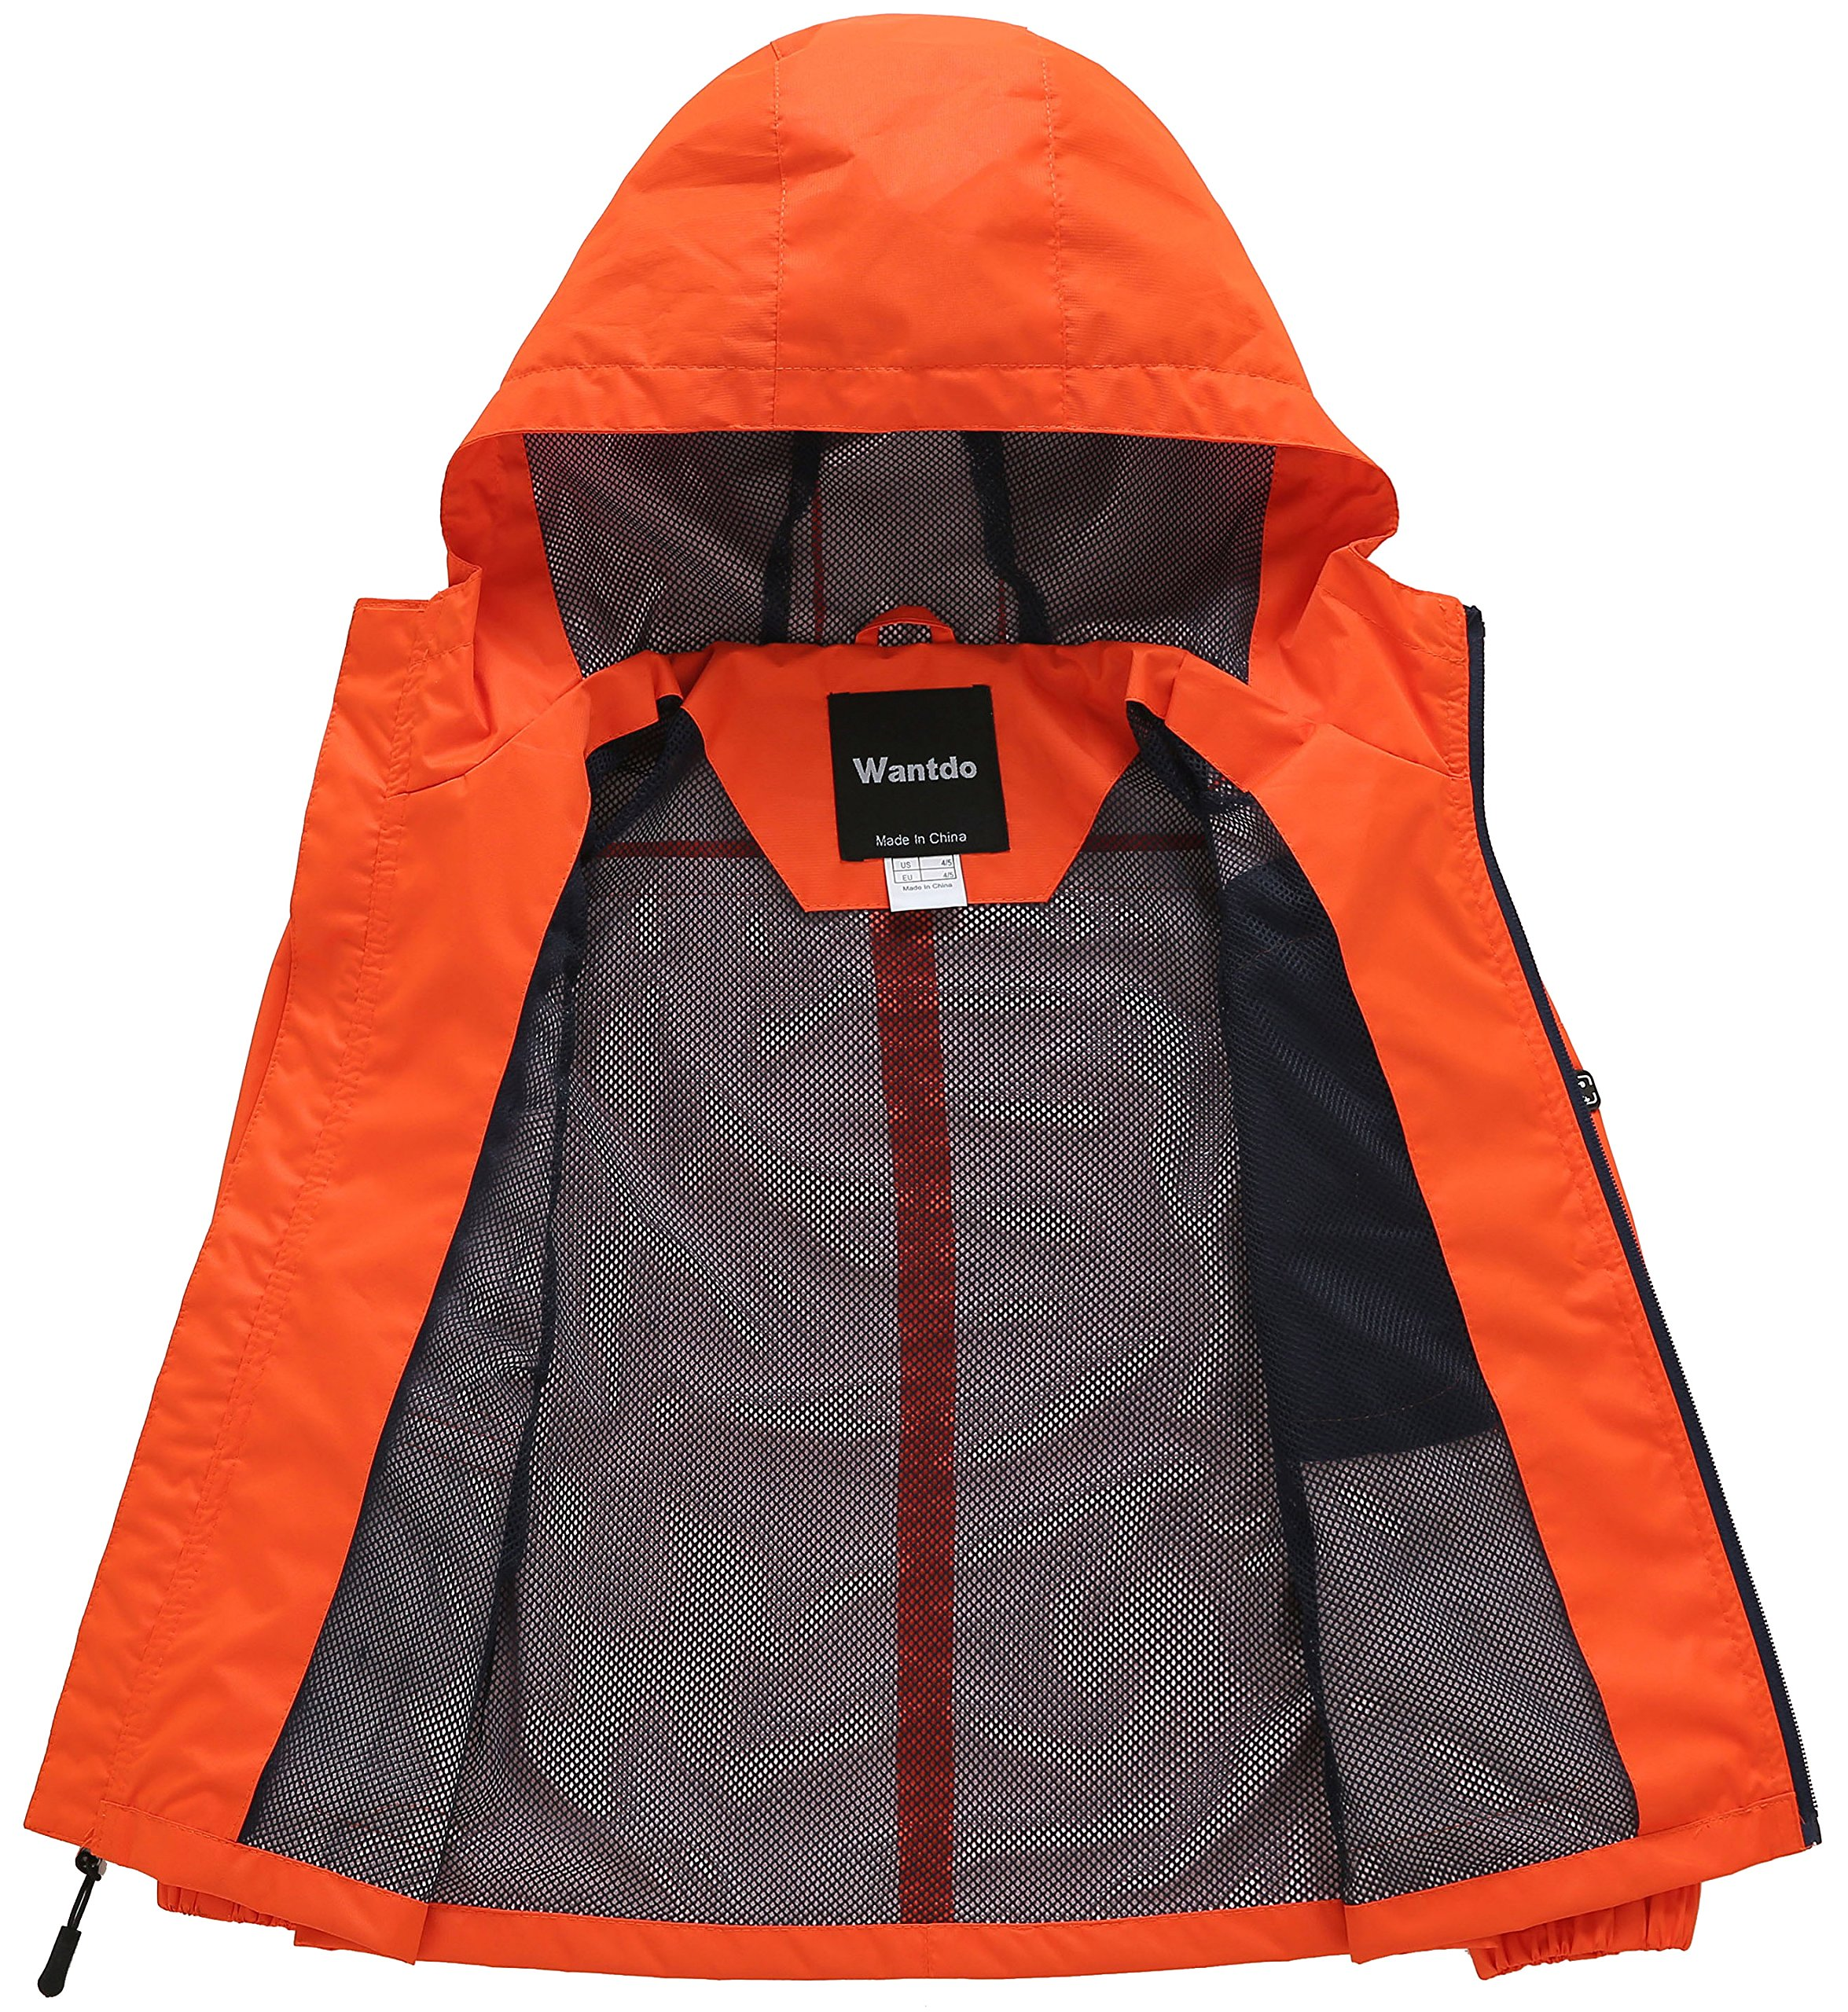 Wantdo Boy's Ultra Light Packable Travel Jacket Outdoor Windcheater Zipped Hoodies for Traveling(Lily Orange Yellow, 14/16) by Wantdo (Image #3)